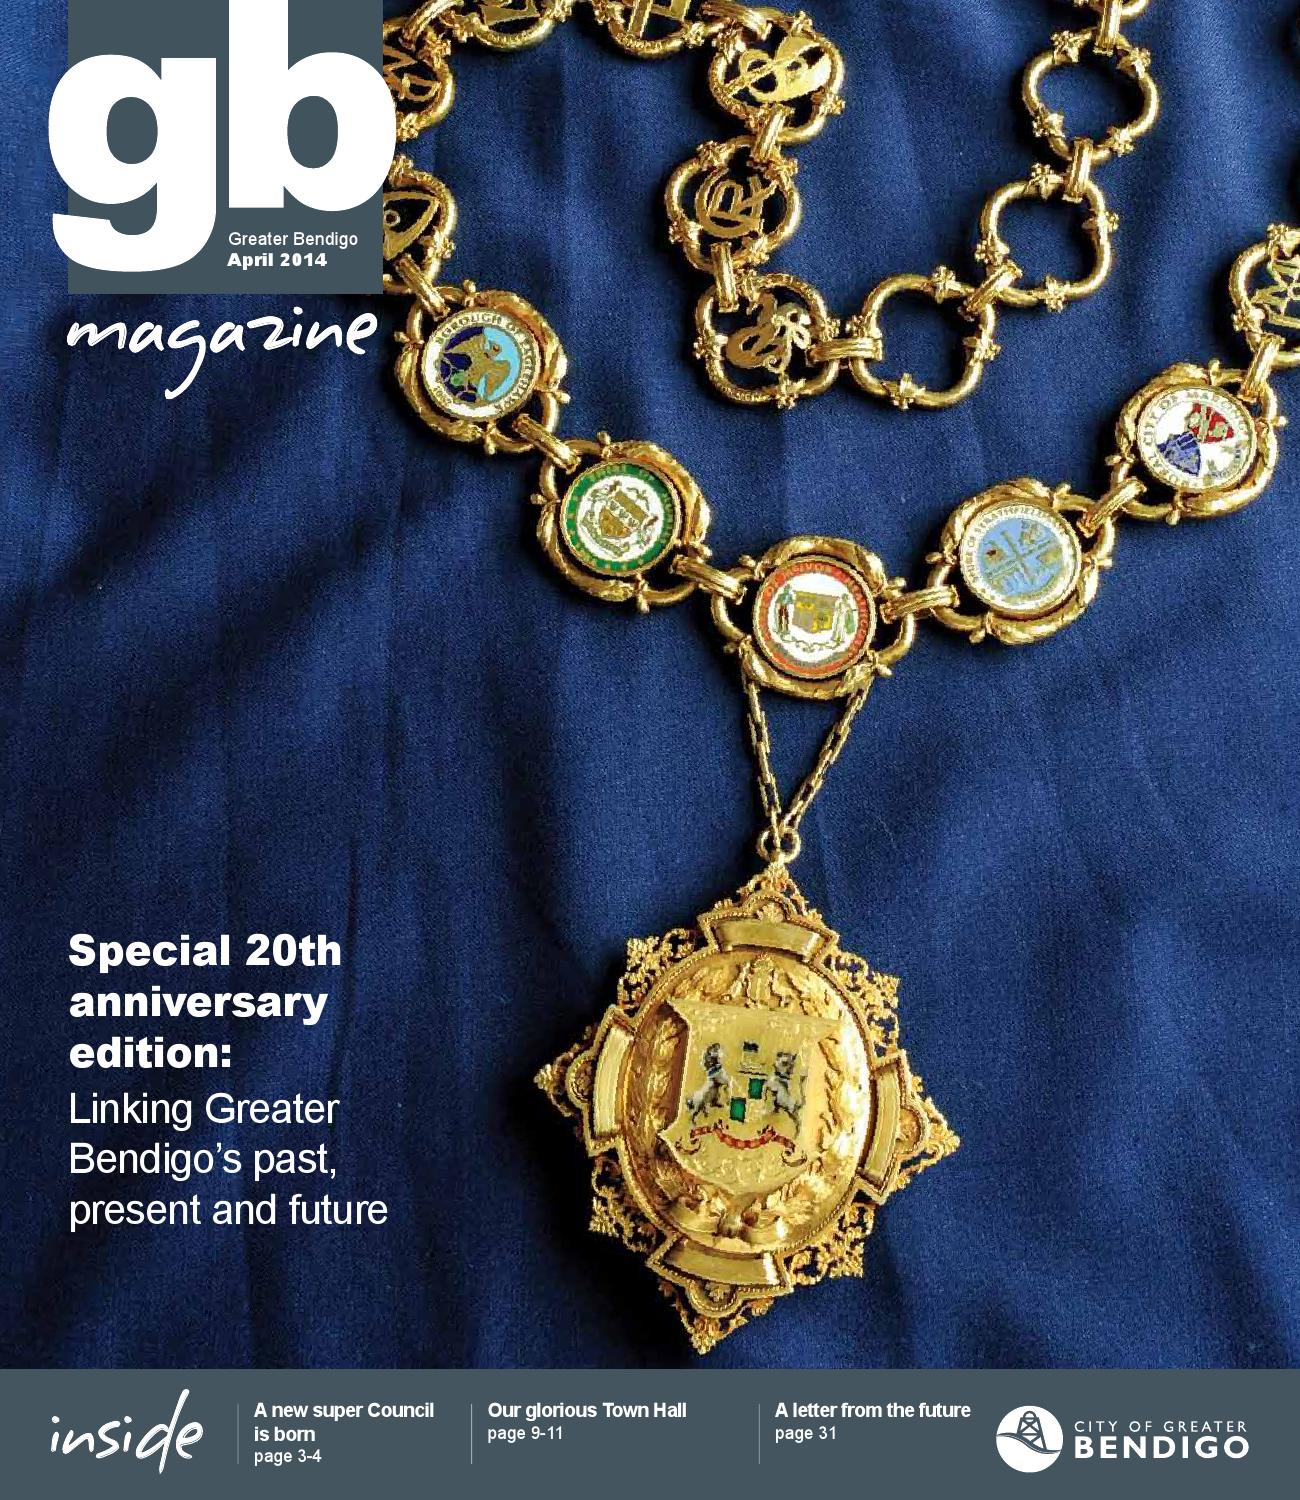 Gb magazine april 2014 by city of greater bendigo   issuu